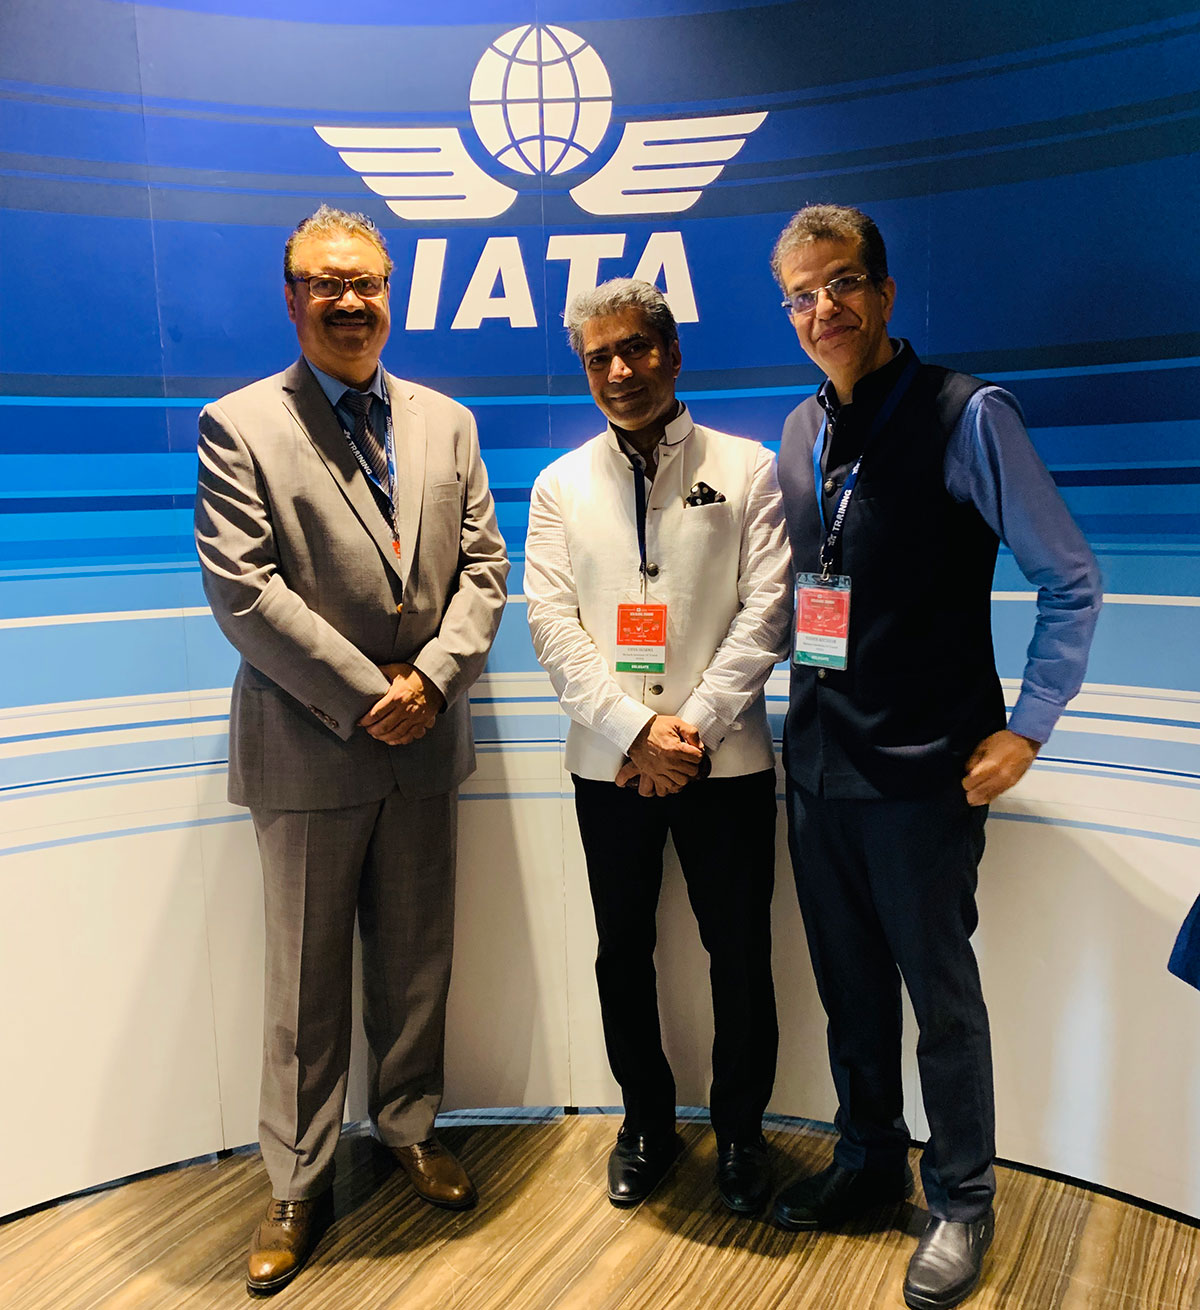 Our Directors Vipan Sharma & Sudhir Kochhar with Gurjit Gill, Manager, Training Partner & Business Development at IATA Training at IATA Global Training Partner Conference held in New Delhi